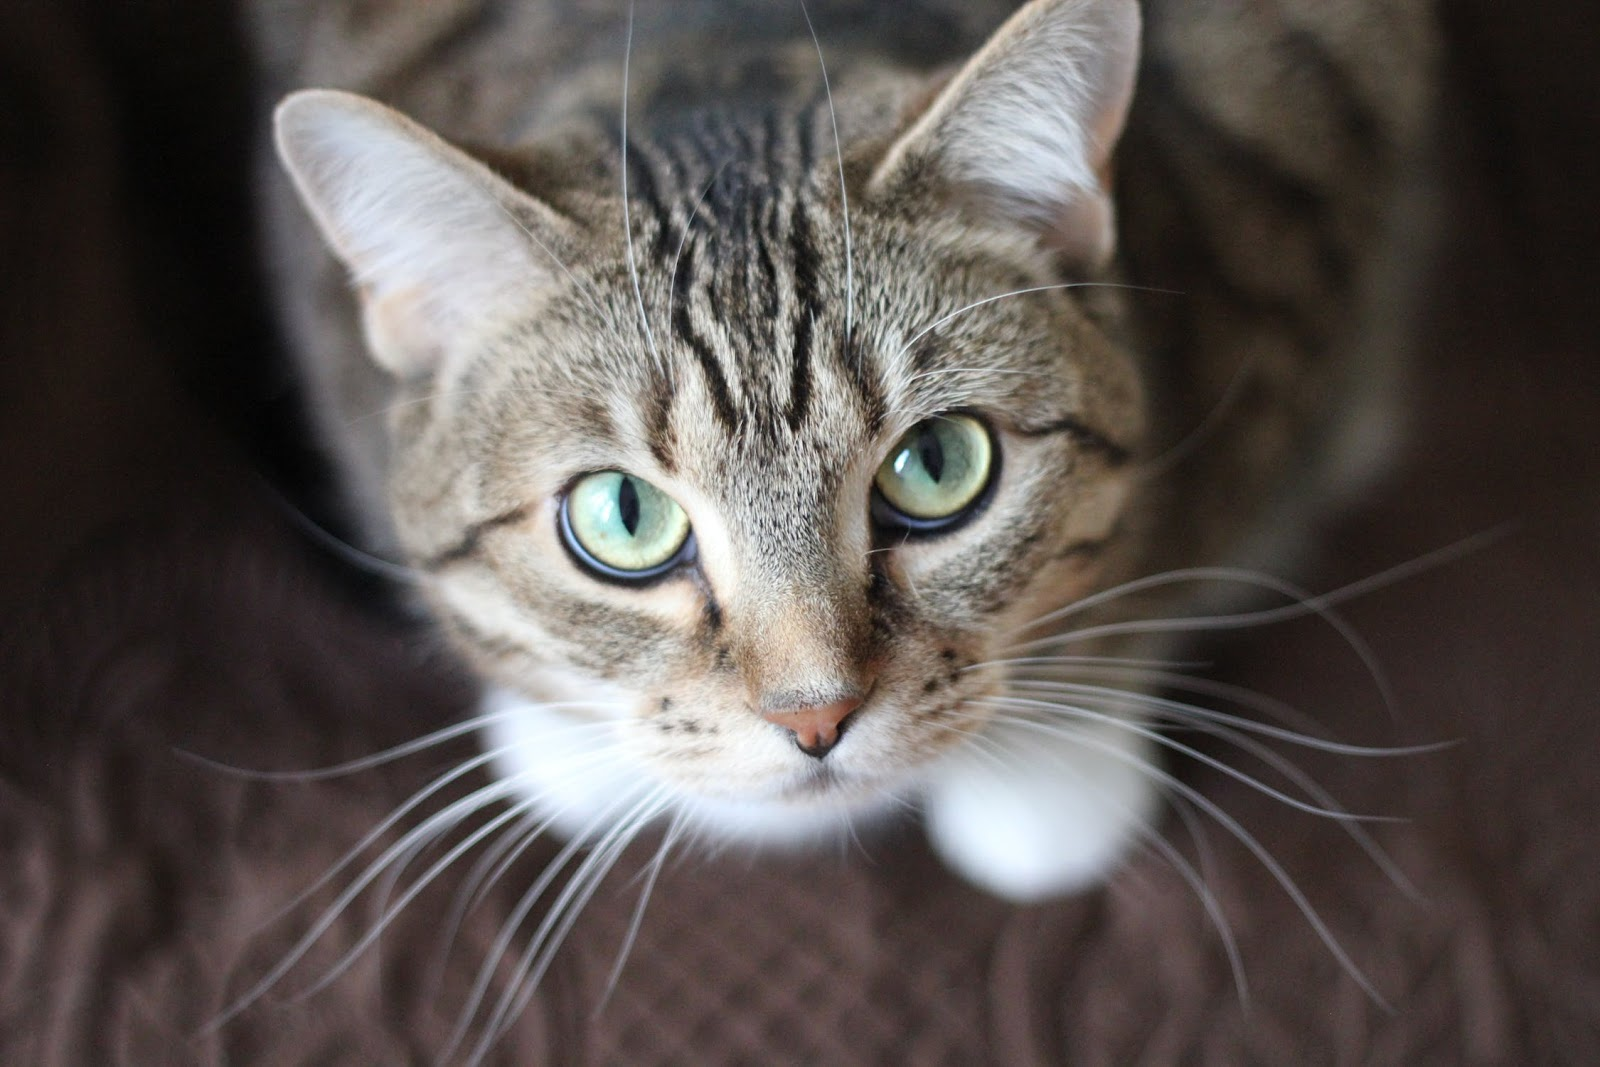 A tabby cat looking directly into the camera